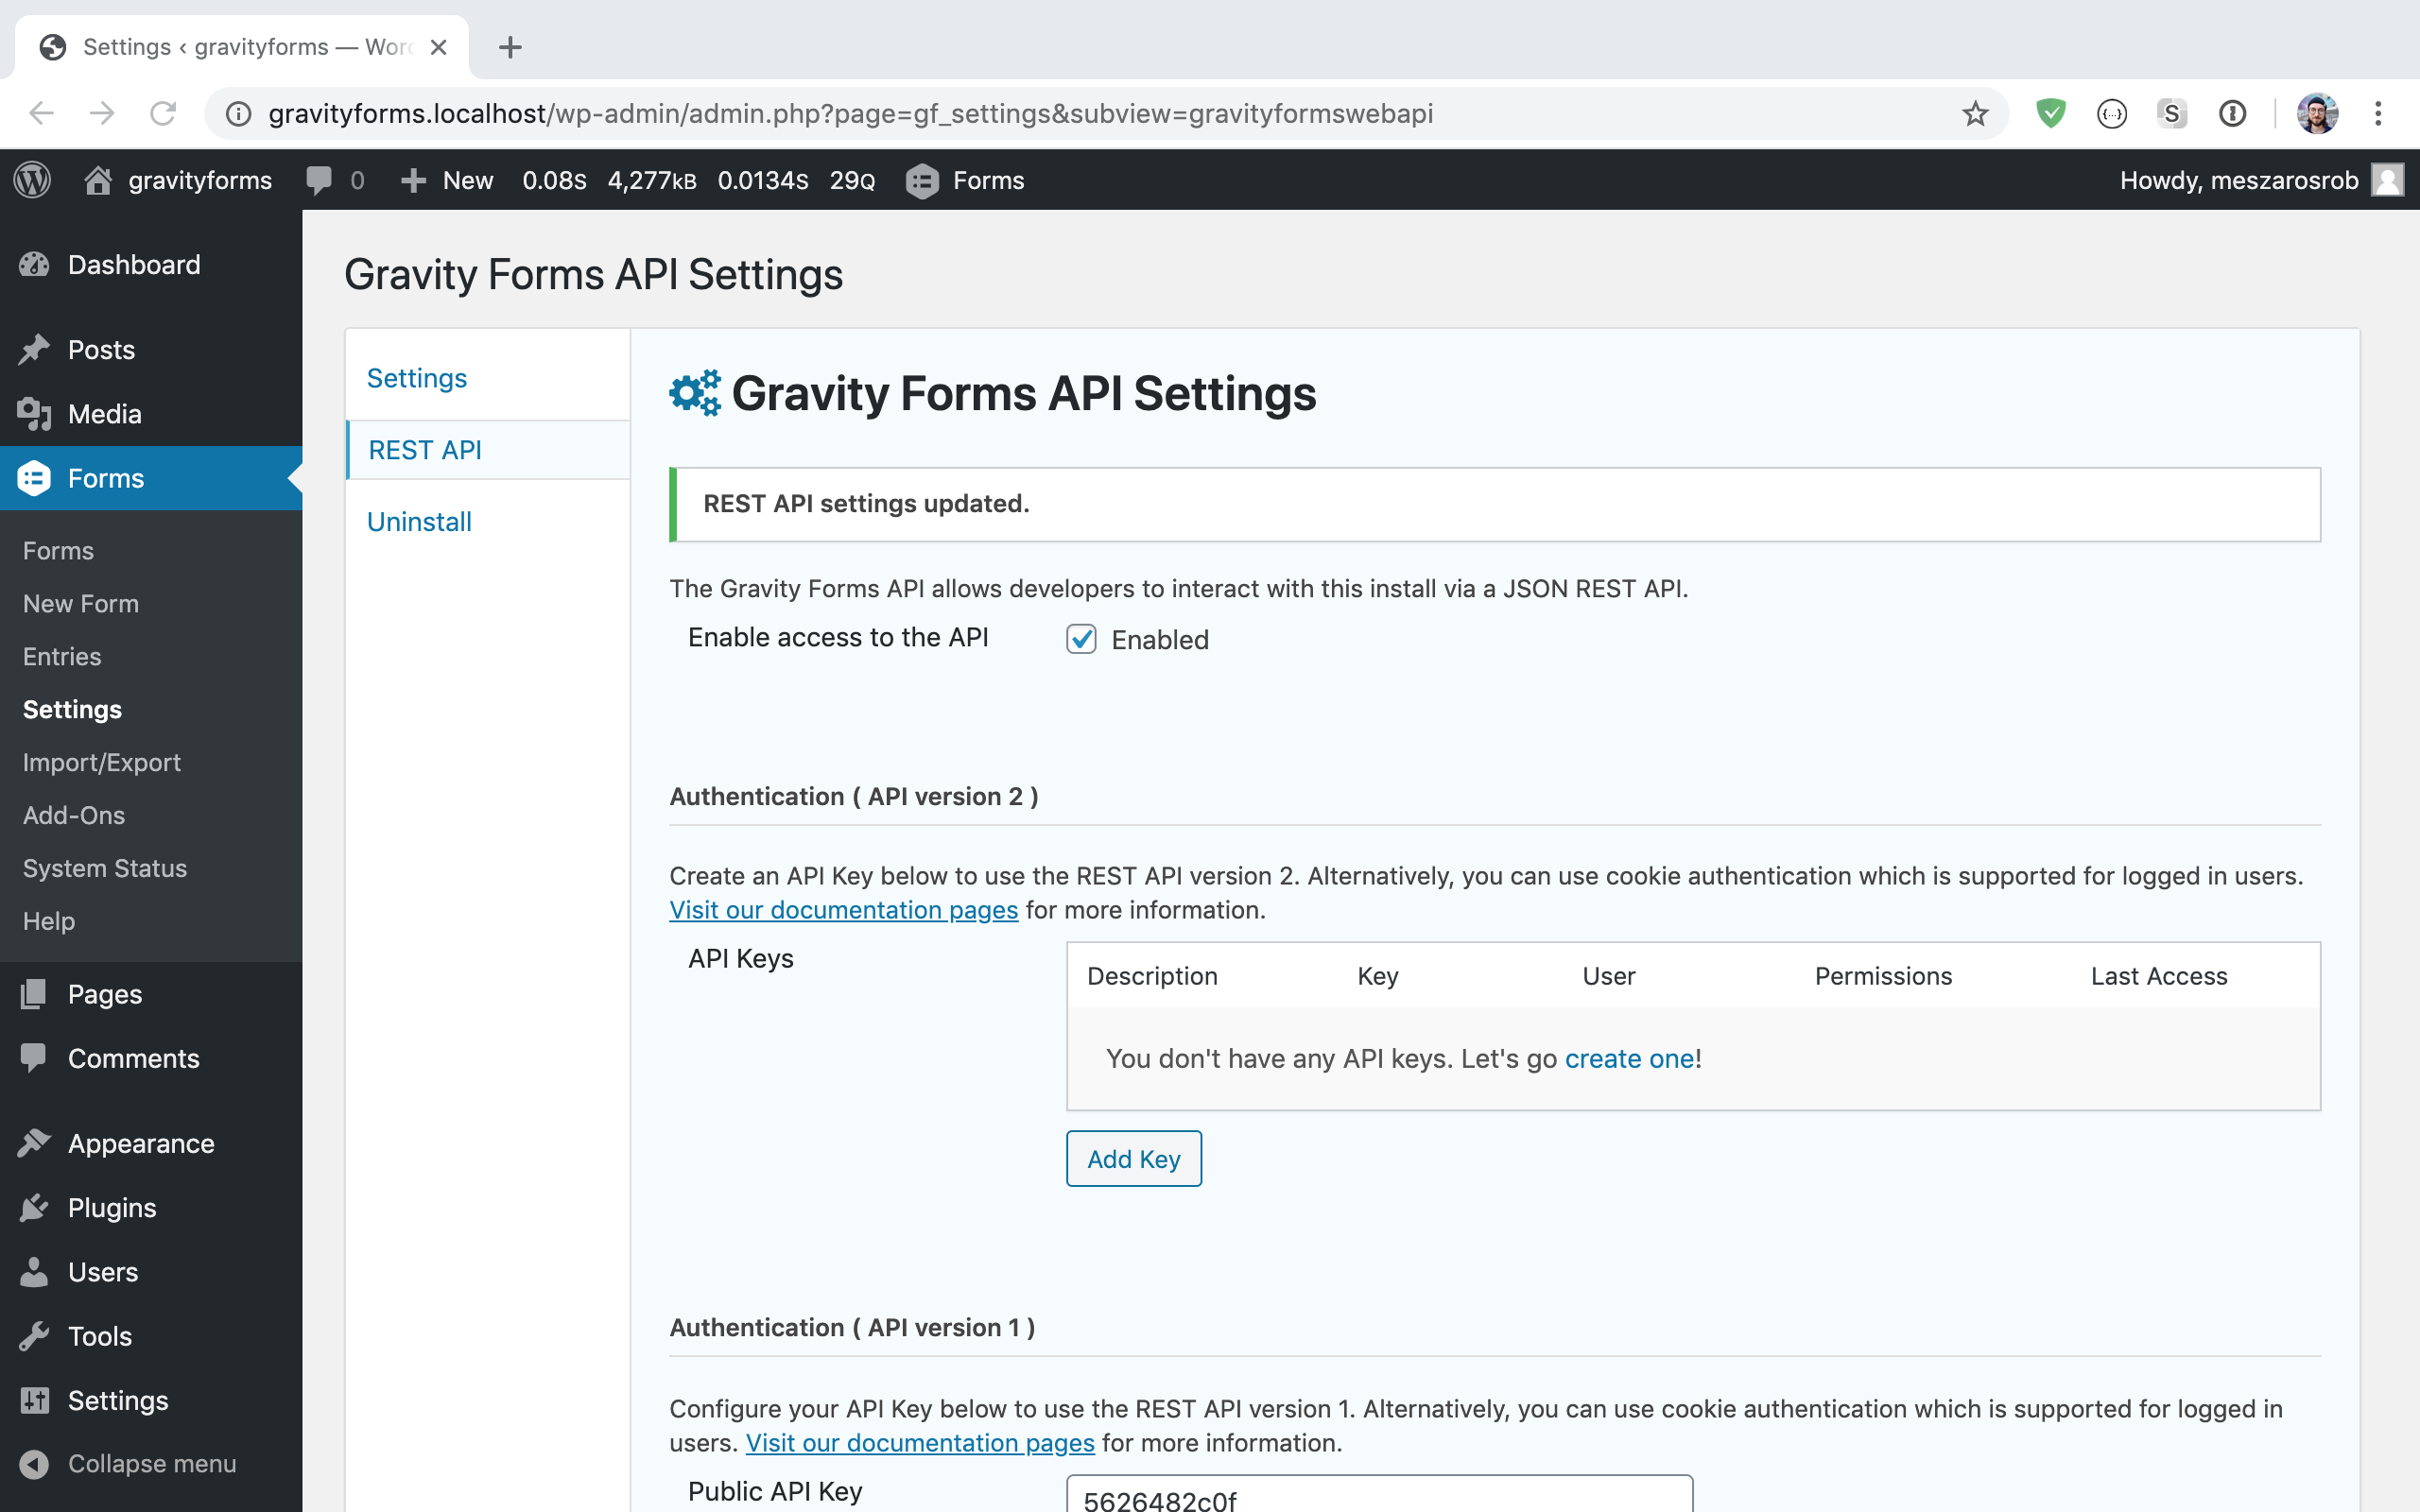 Enabling the Gravity Forms REST API